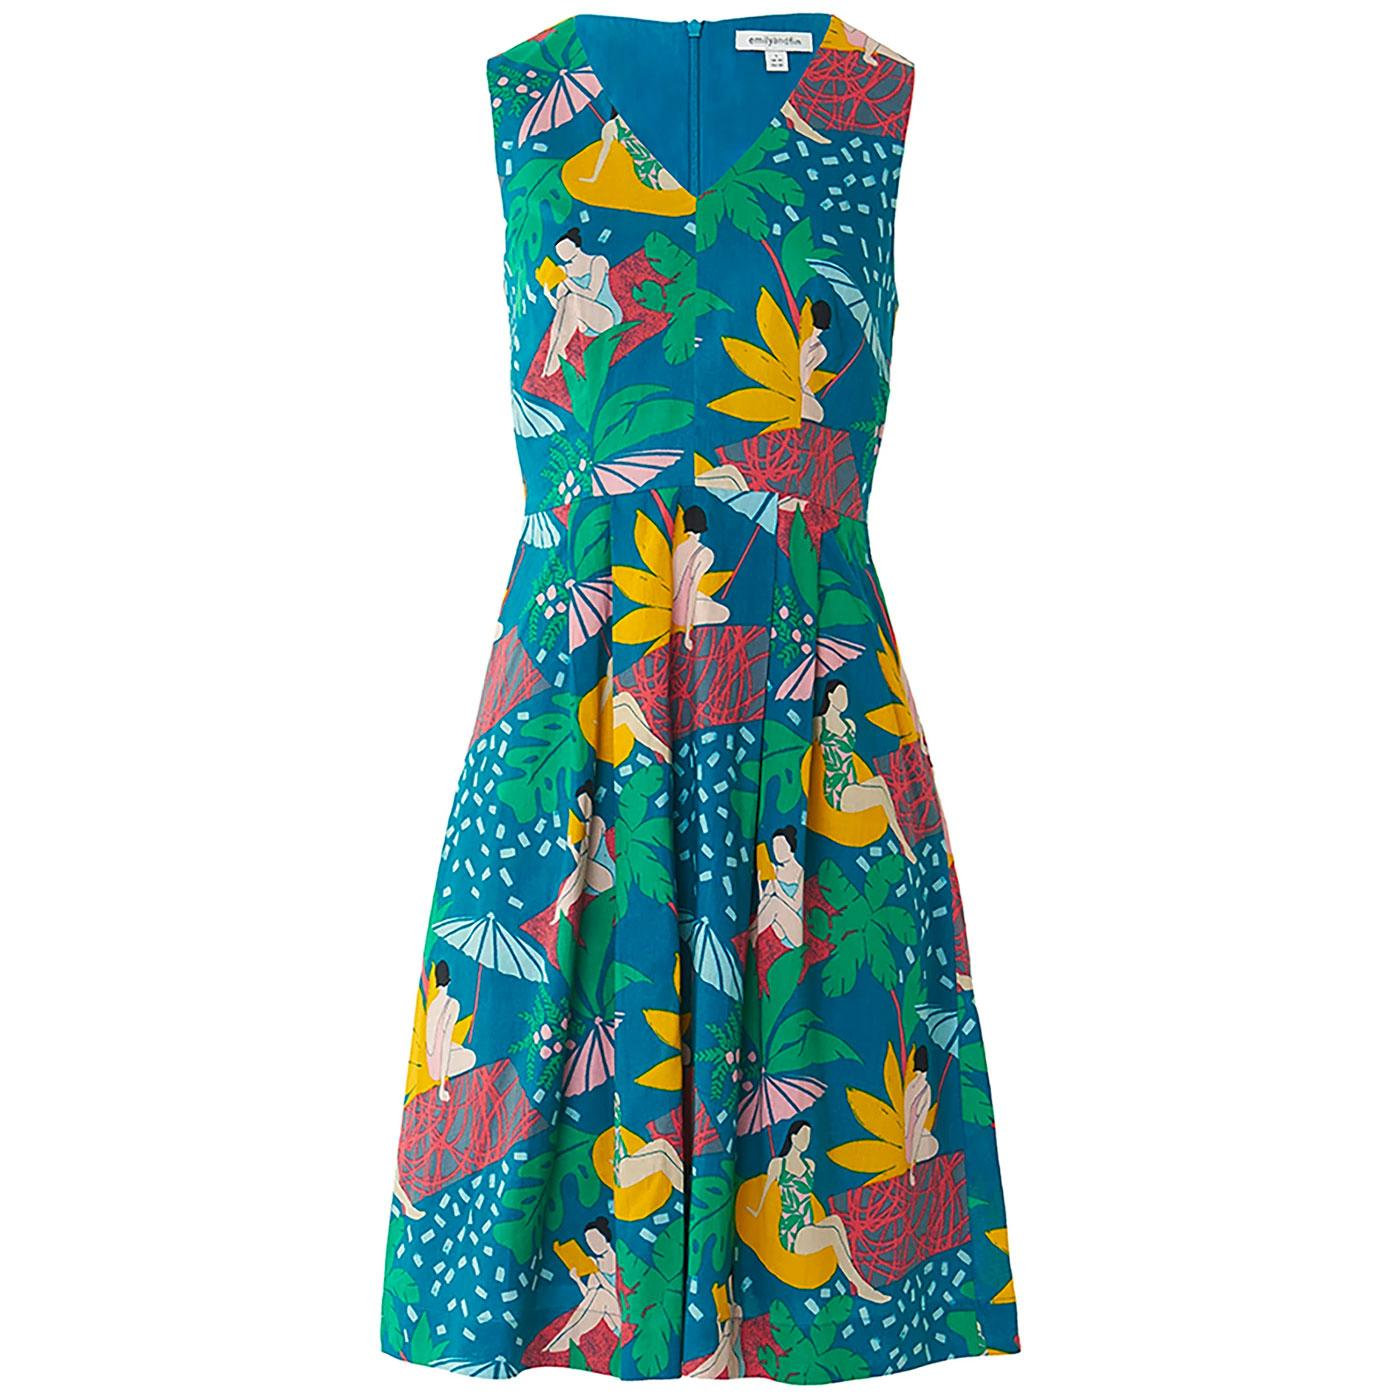 Amelie EMILY & FIN Retro Riviera Poolside Dress